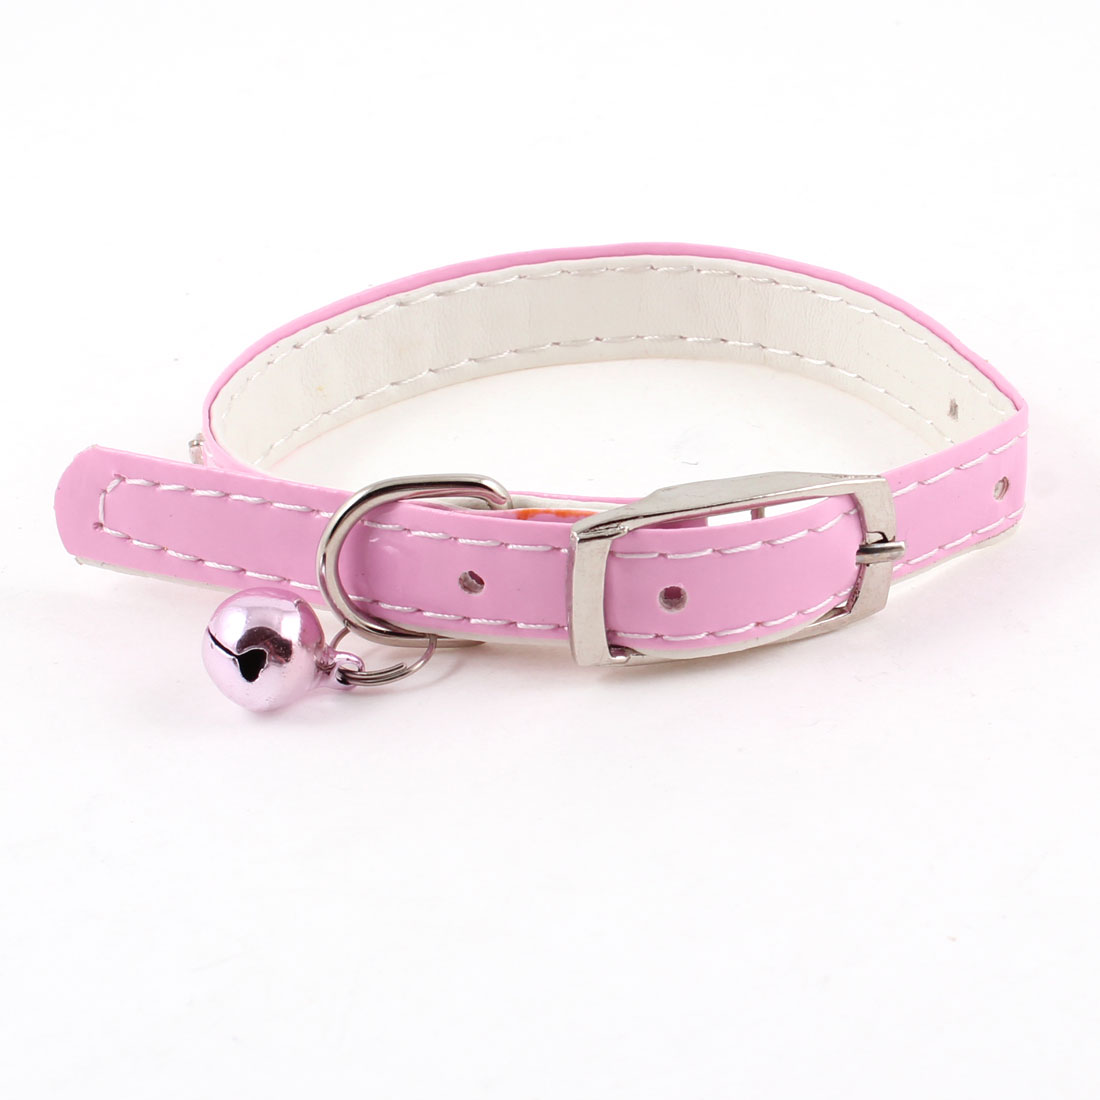 One Pin Buckle Rhinestone Decor Belt Jingle Bell Cat Dog Pets Neck Collar Pink